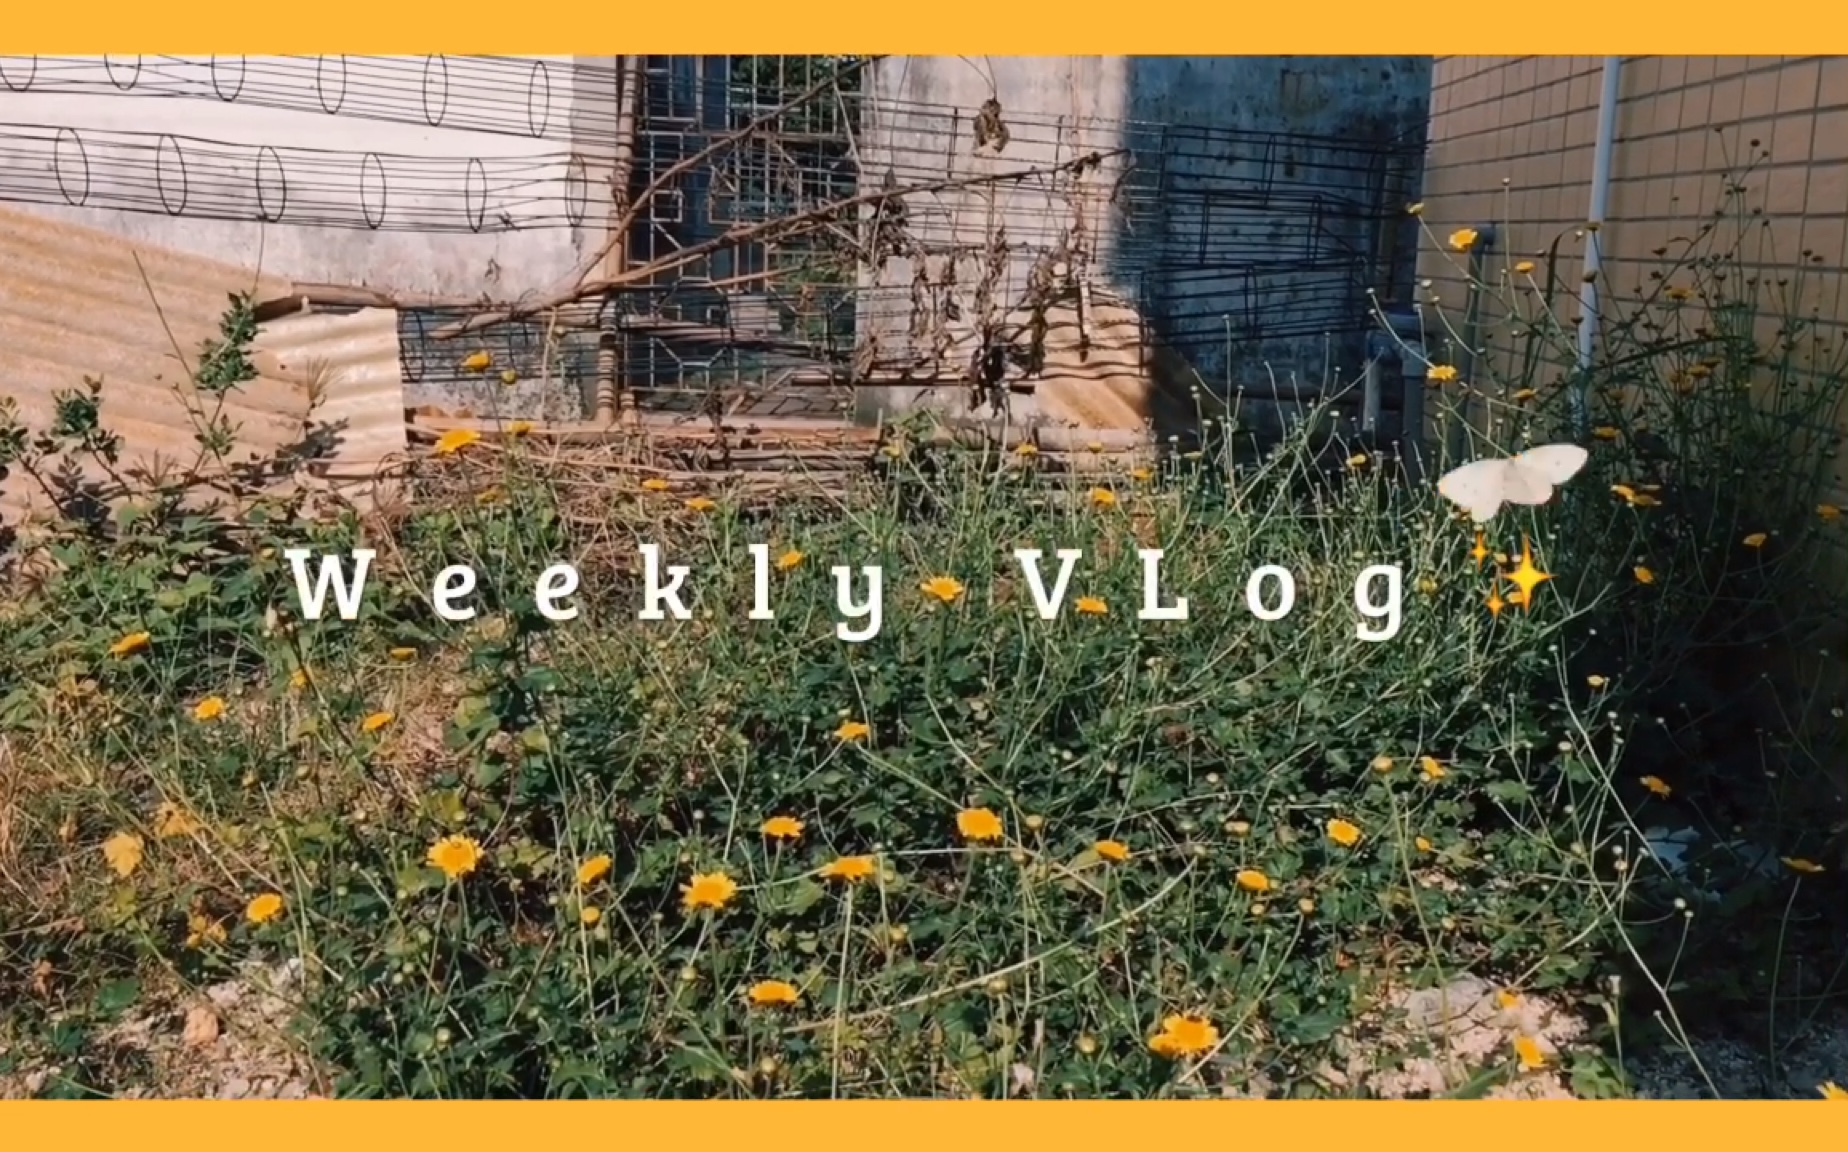 *Weekly VLog / Enjoy your life. Jam的一周小事件/希望你也快乐